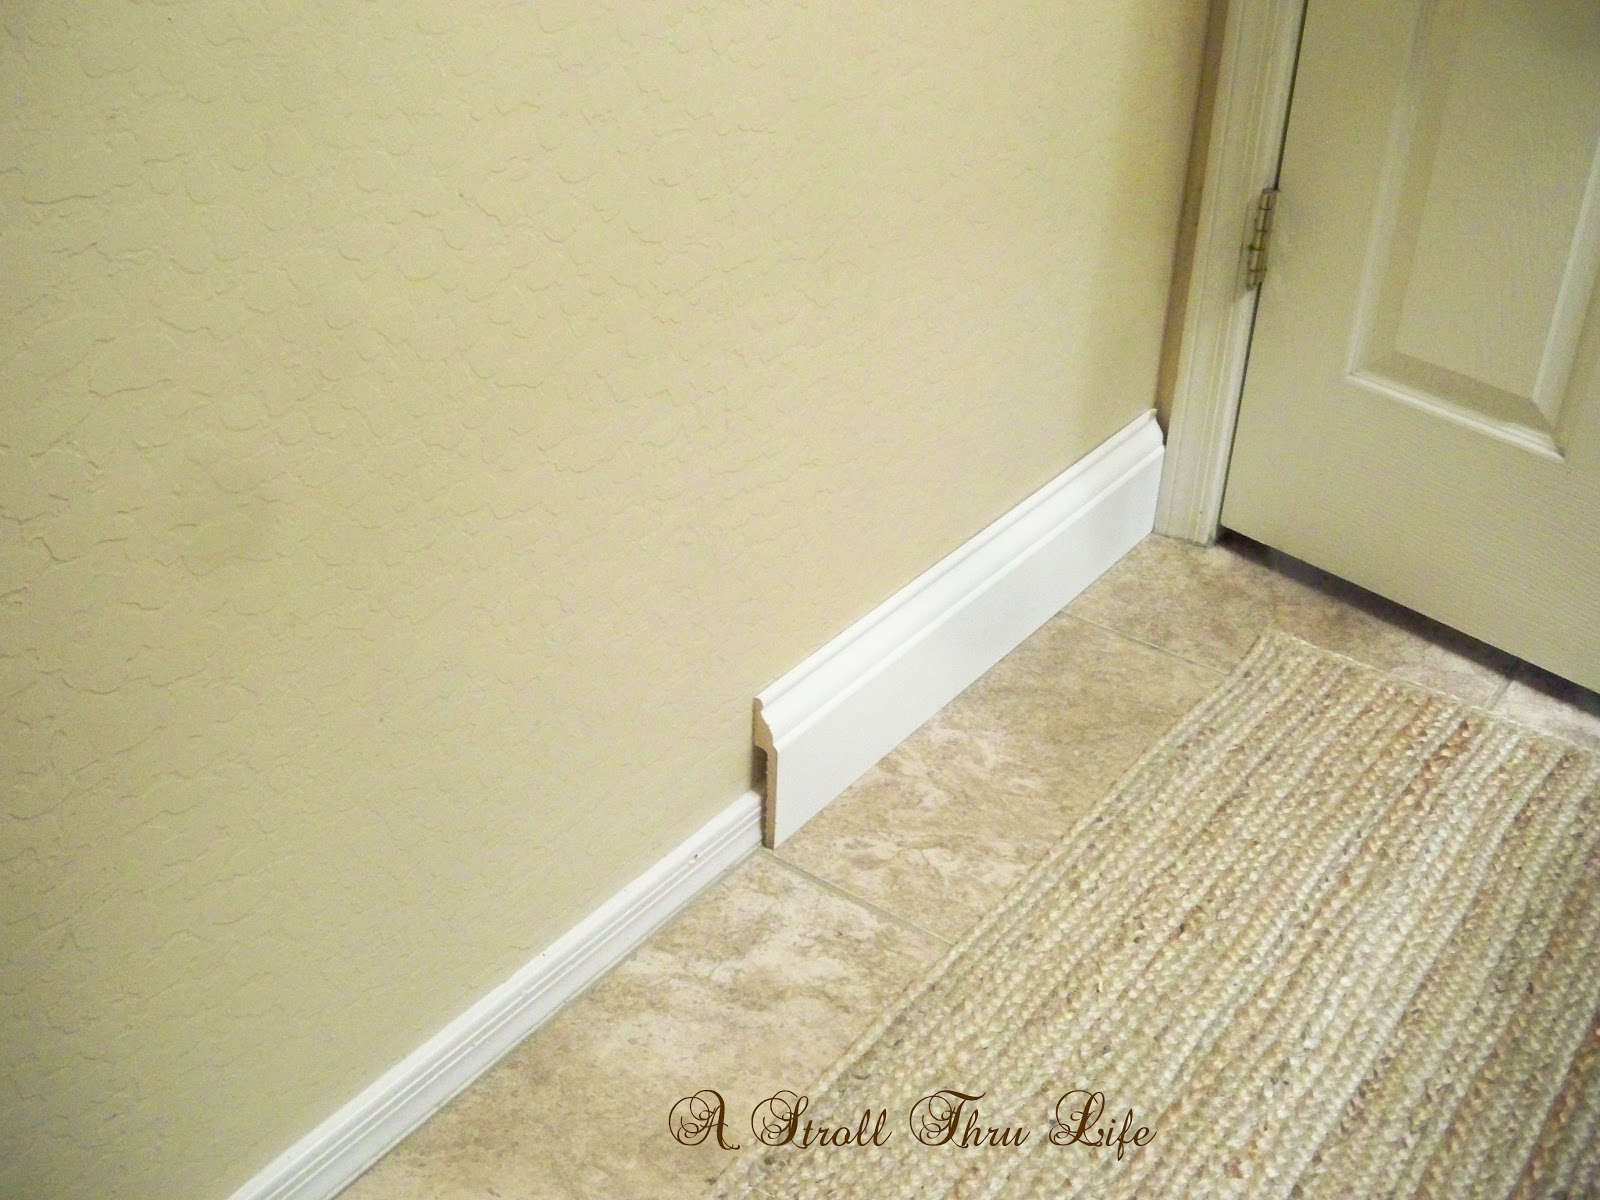 a stroll thru life: install wide baseboard molding over existing